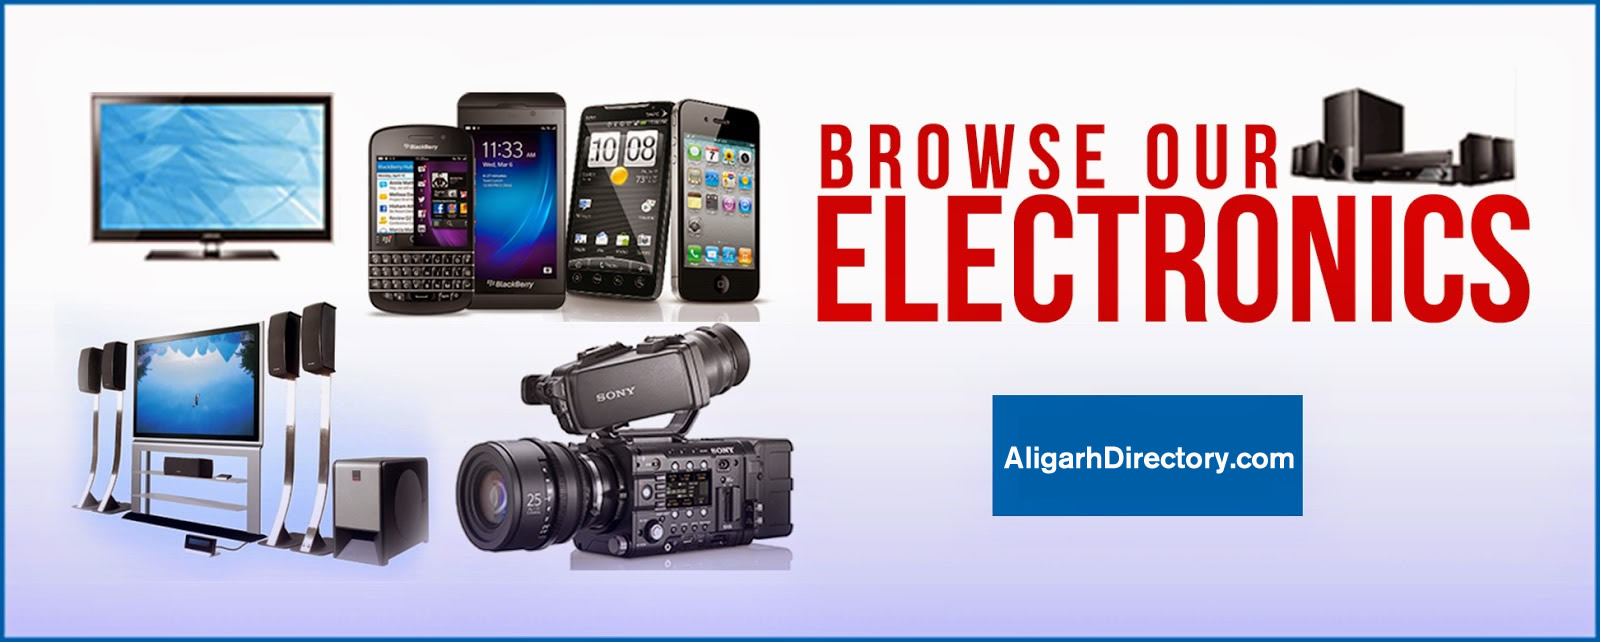 Electronic Showrooms In Aligarh